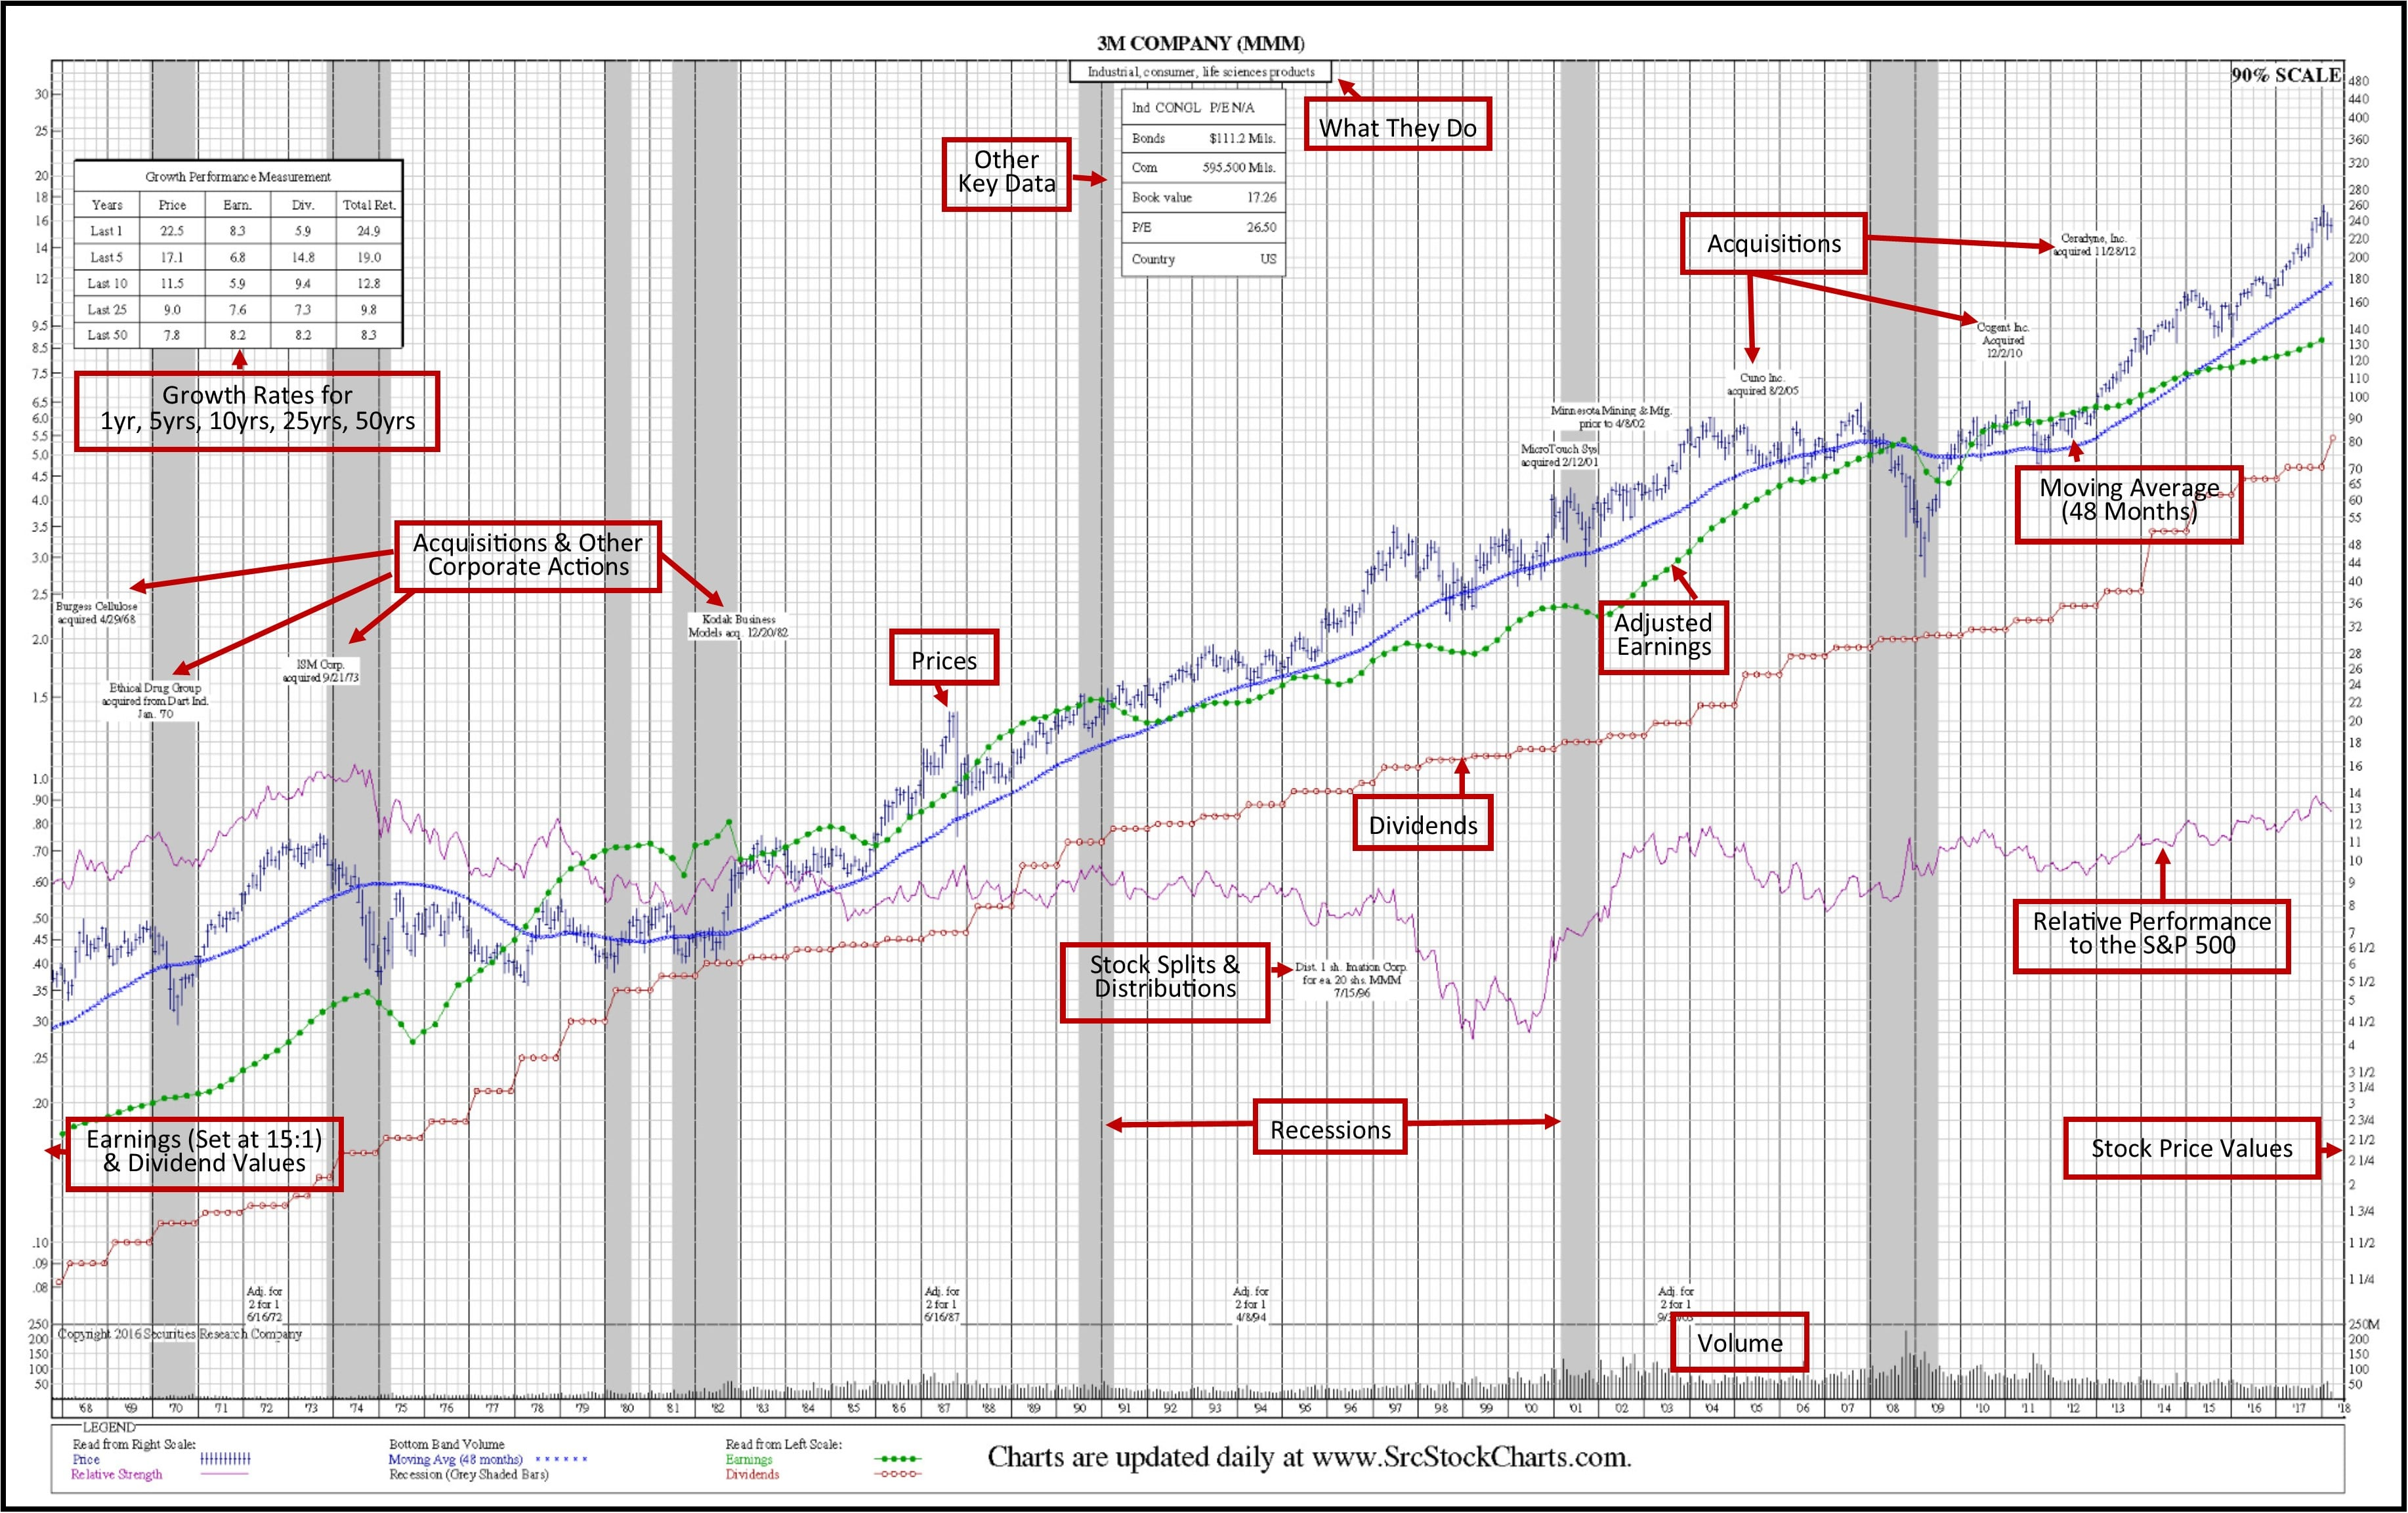 SRC Book 50-Year Stock Charts 50-Year Stock Chart